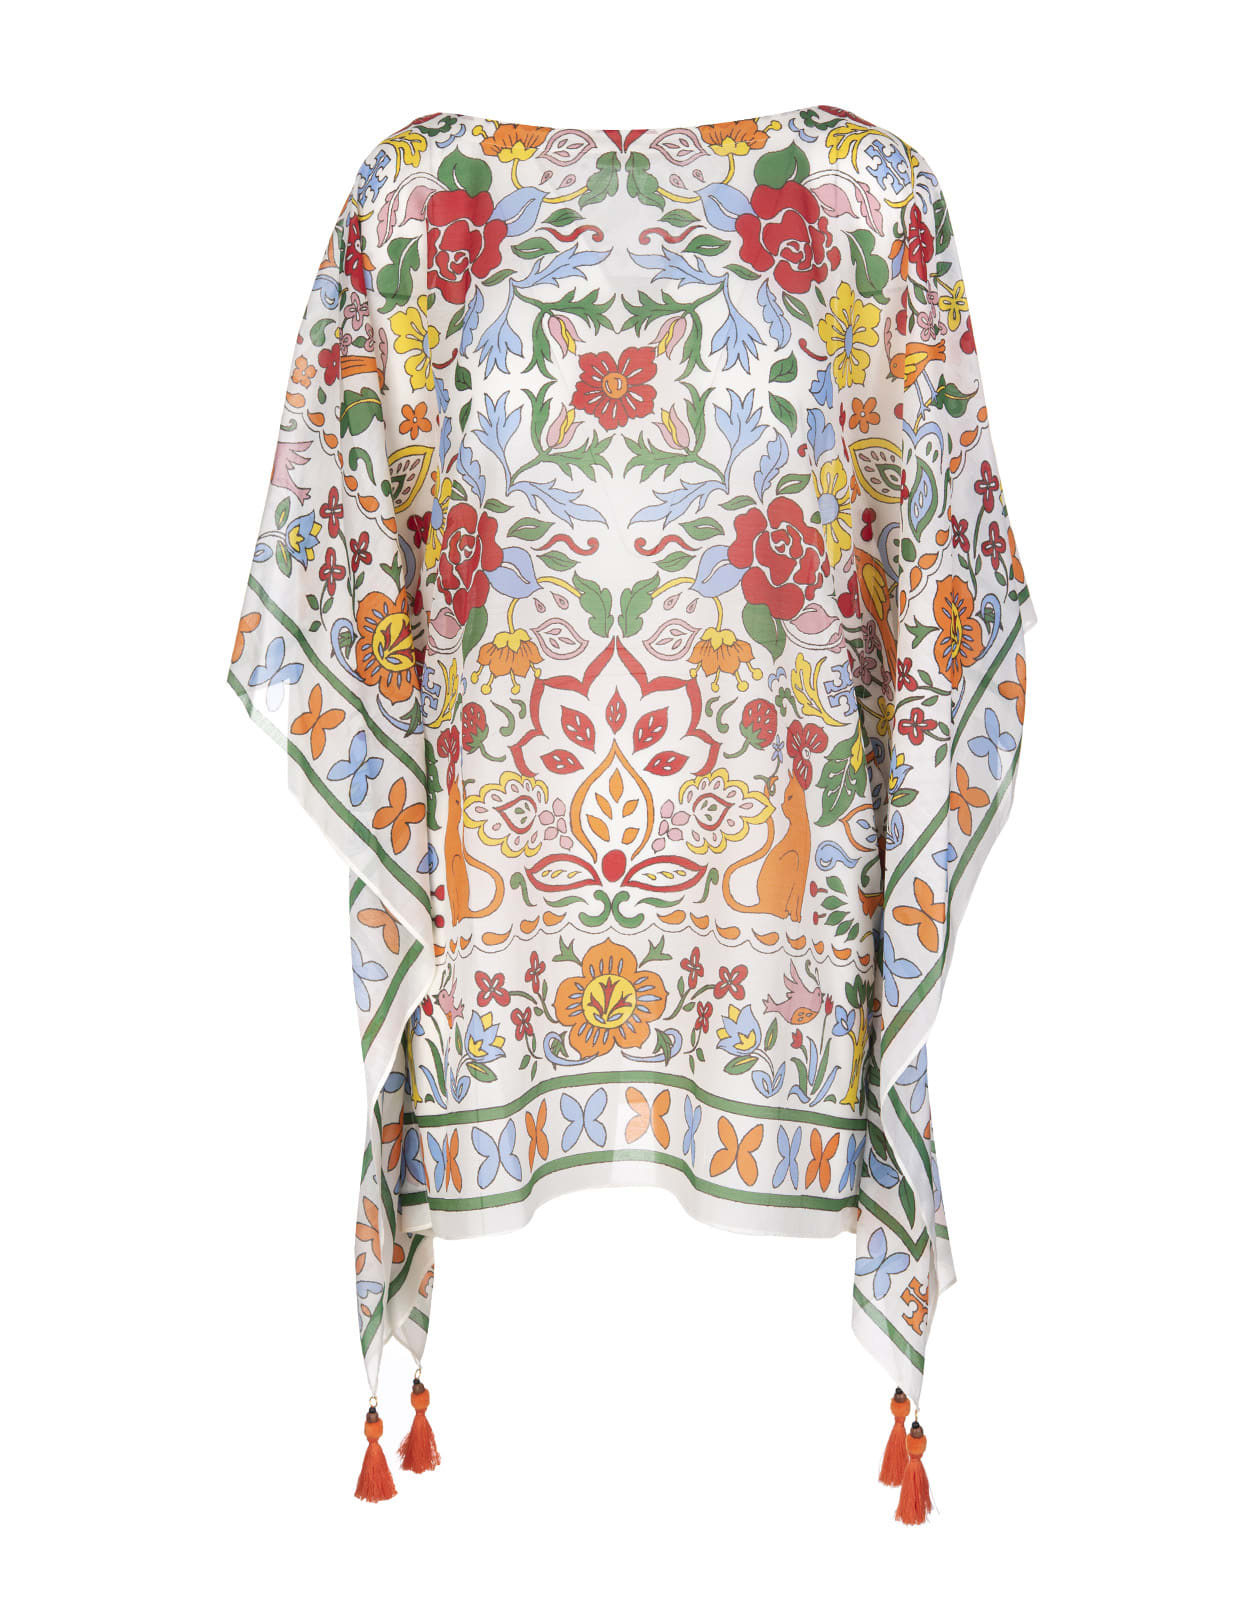 Buy Tory Burch White Beach Tunic With Multicolored Fantasy Print online, shop Tory Burch with free shipping